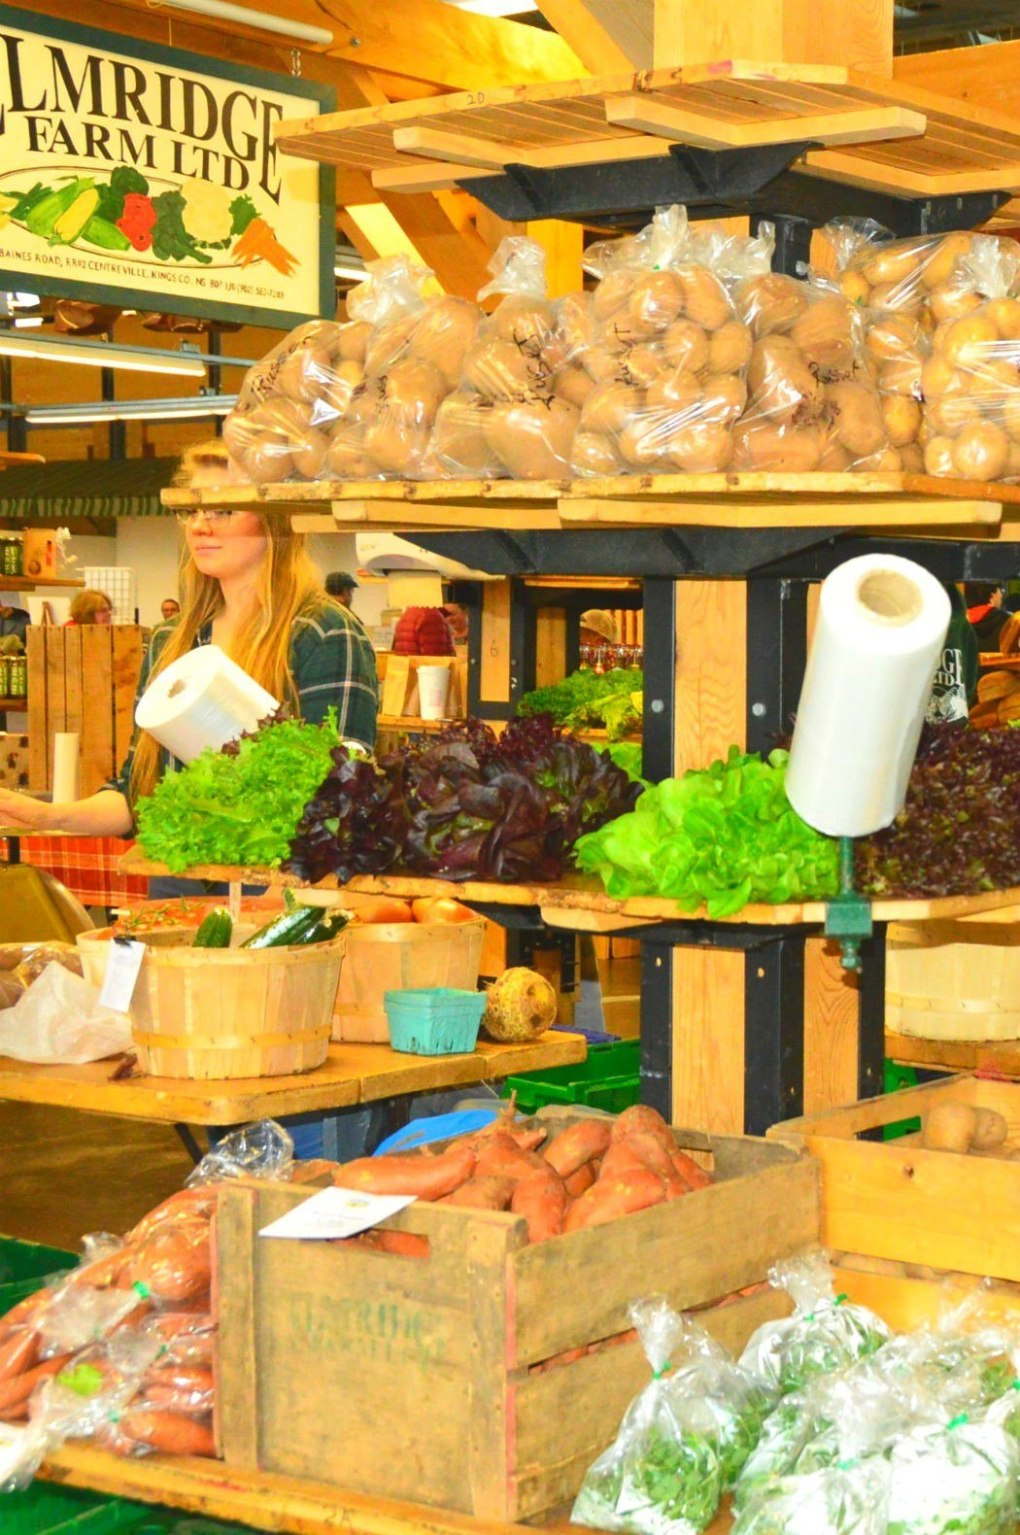 Elmridge Farms fresh produce at Halifax market